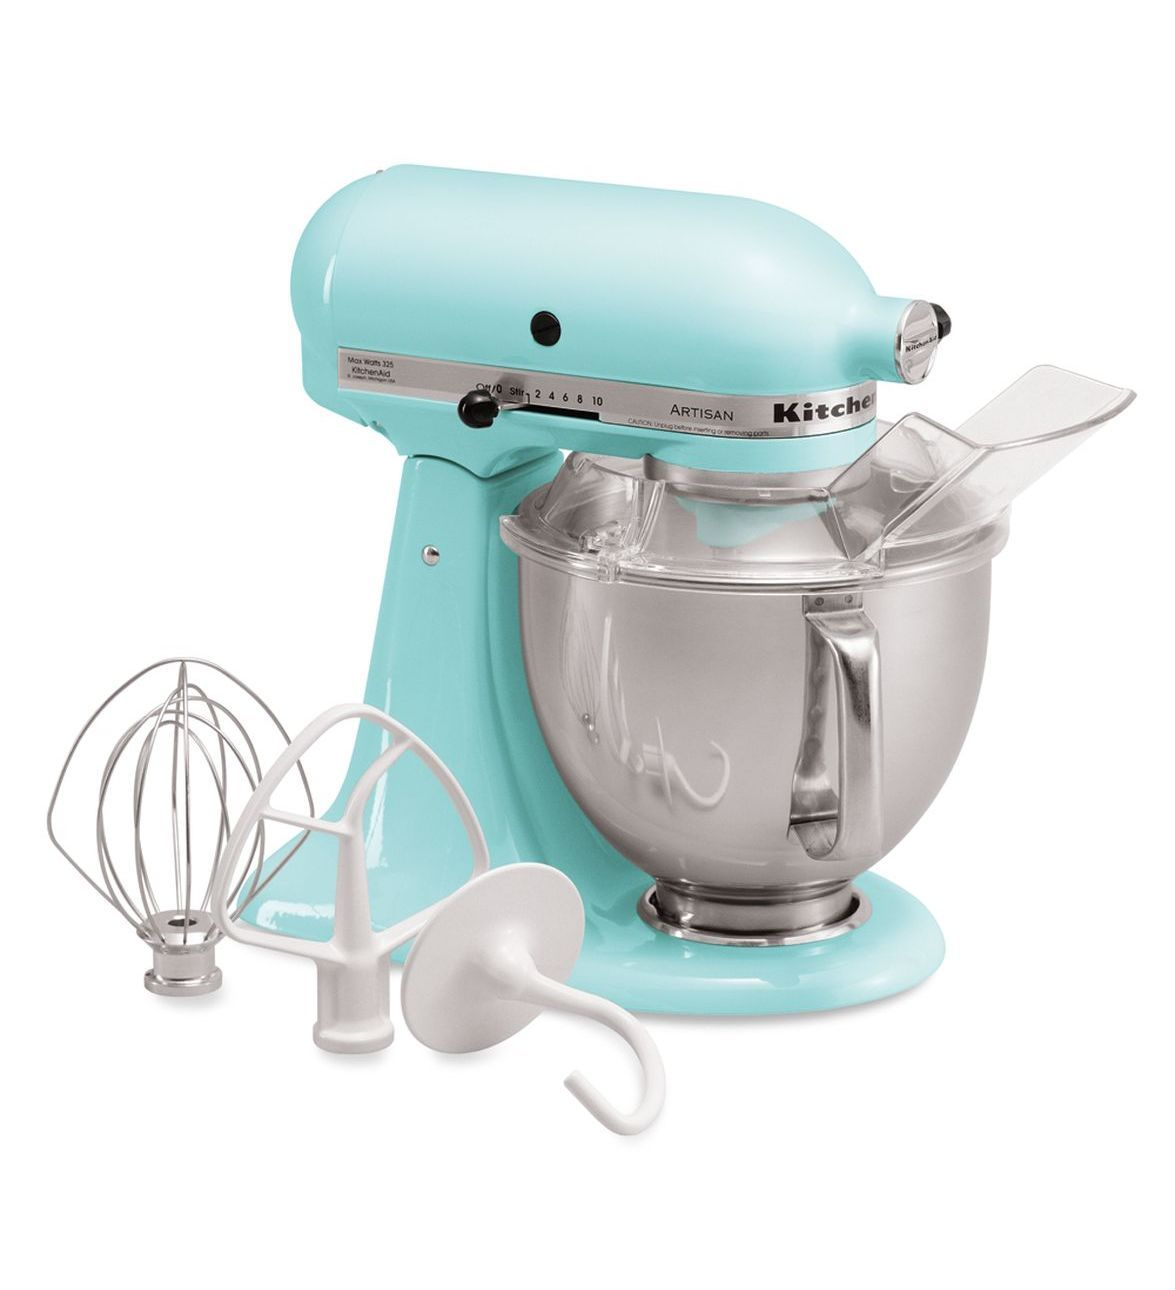 Enter to win a KitchenAid Artisan 5-quart mixer in your choice of ...